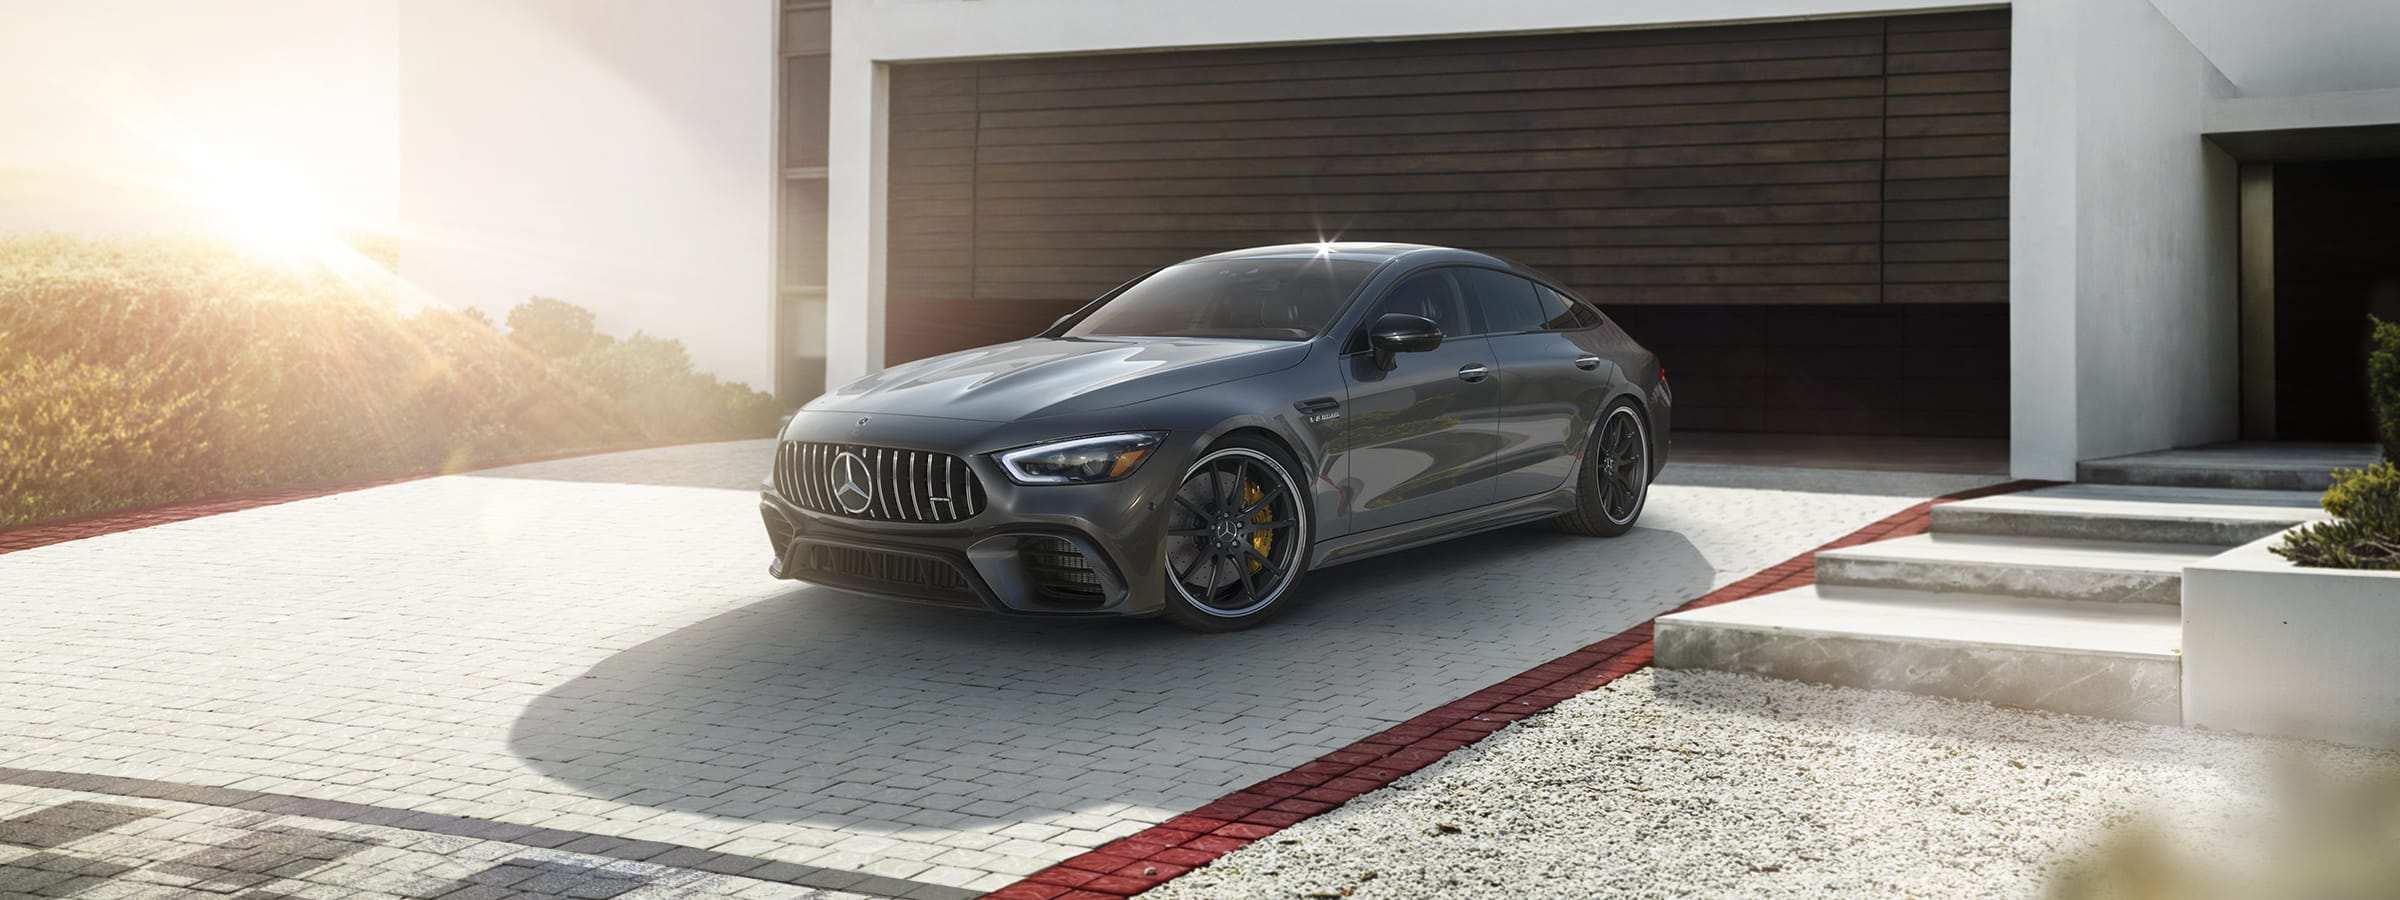 50 New New Mercedes Amg Gt4 2019 Specs Interior